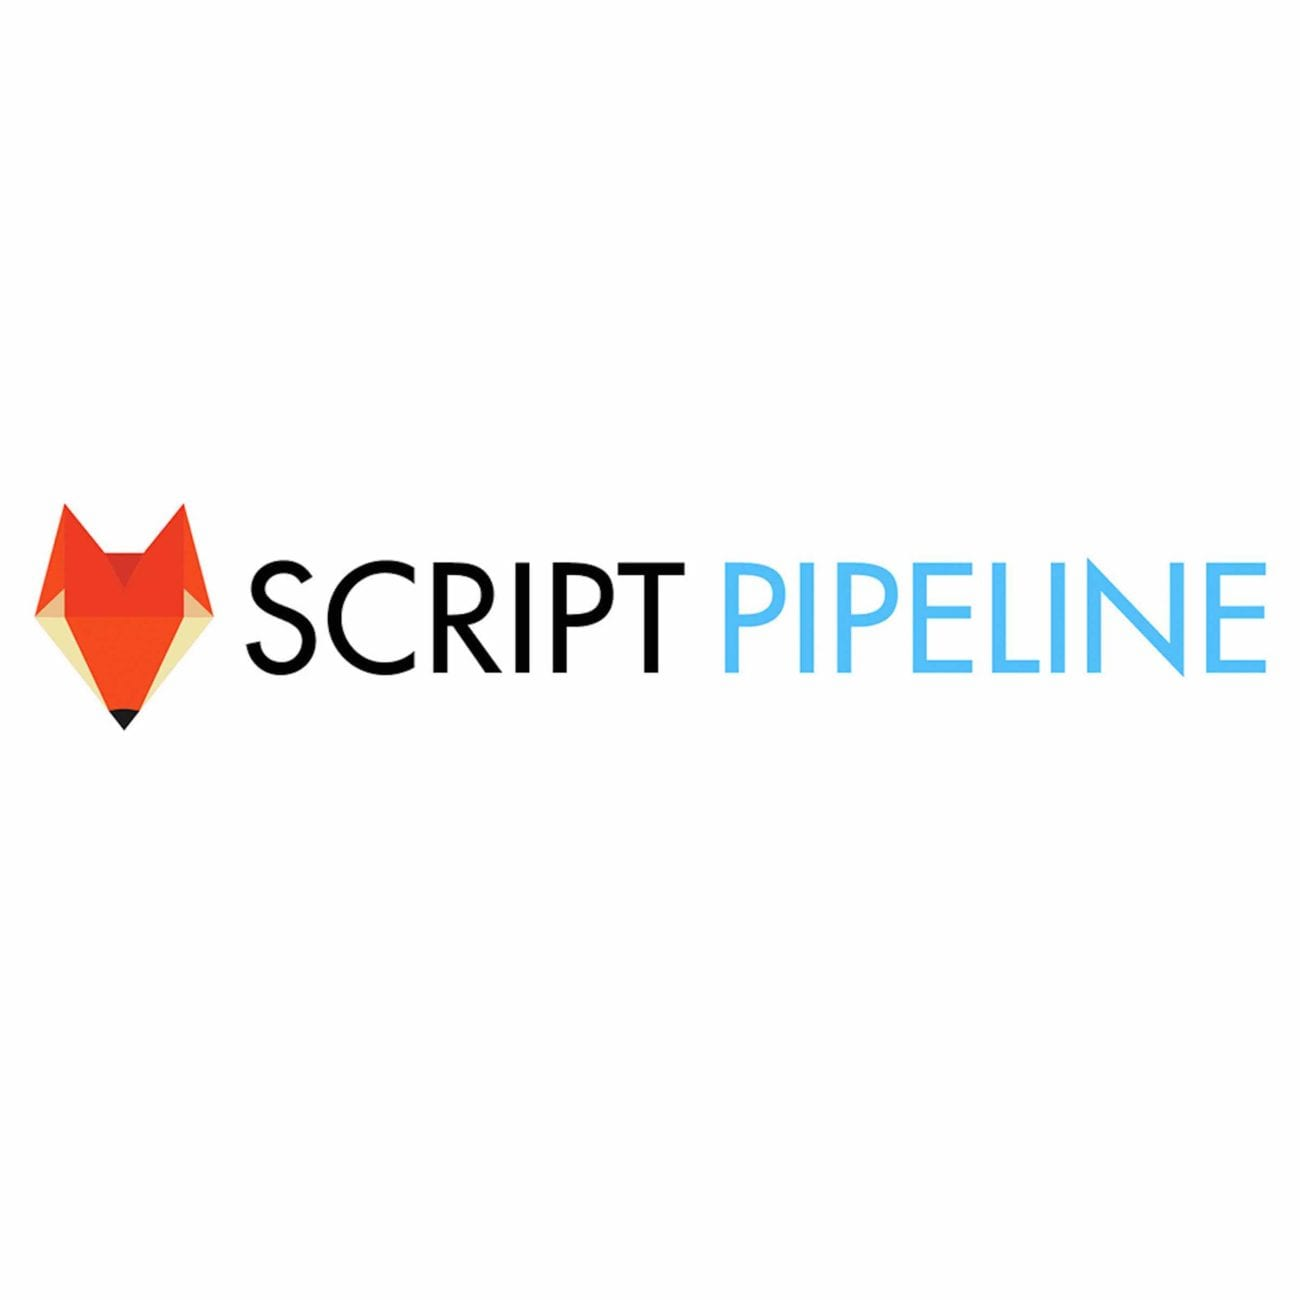 Connections are the game in the media industry. Script Pipeline is the perfect competition for newcomers. Here's why you should enter.